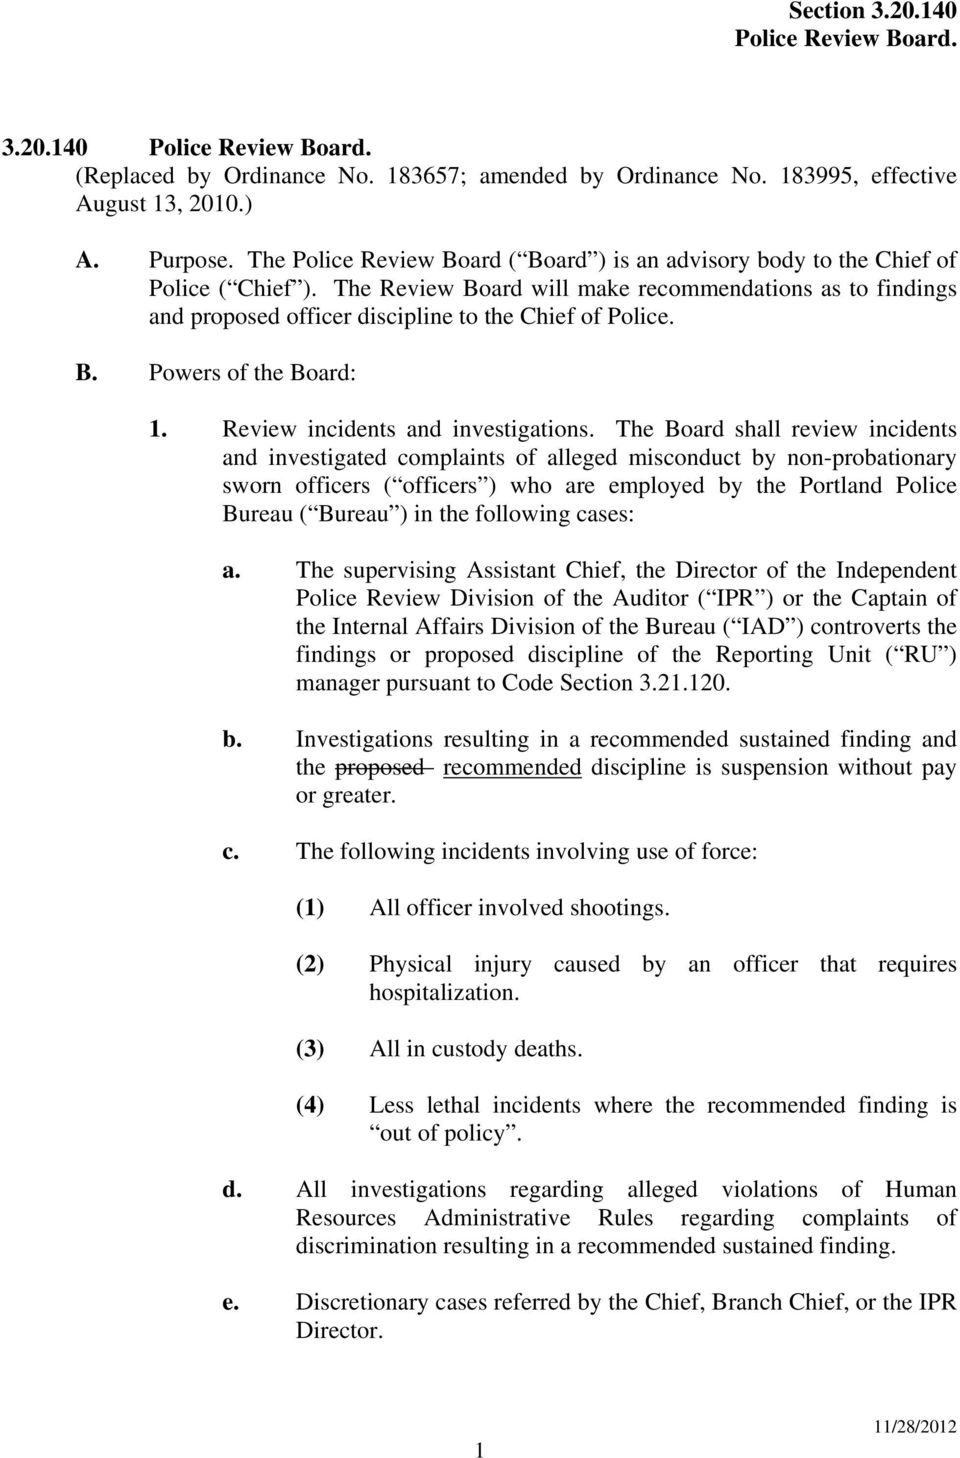 The Review Board will make recommendations as to findings and proposed officer discipline to the Chief of Police. B. Powers of the Board: 1. Review incidents and investigations.